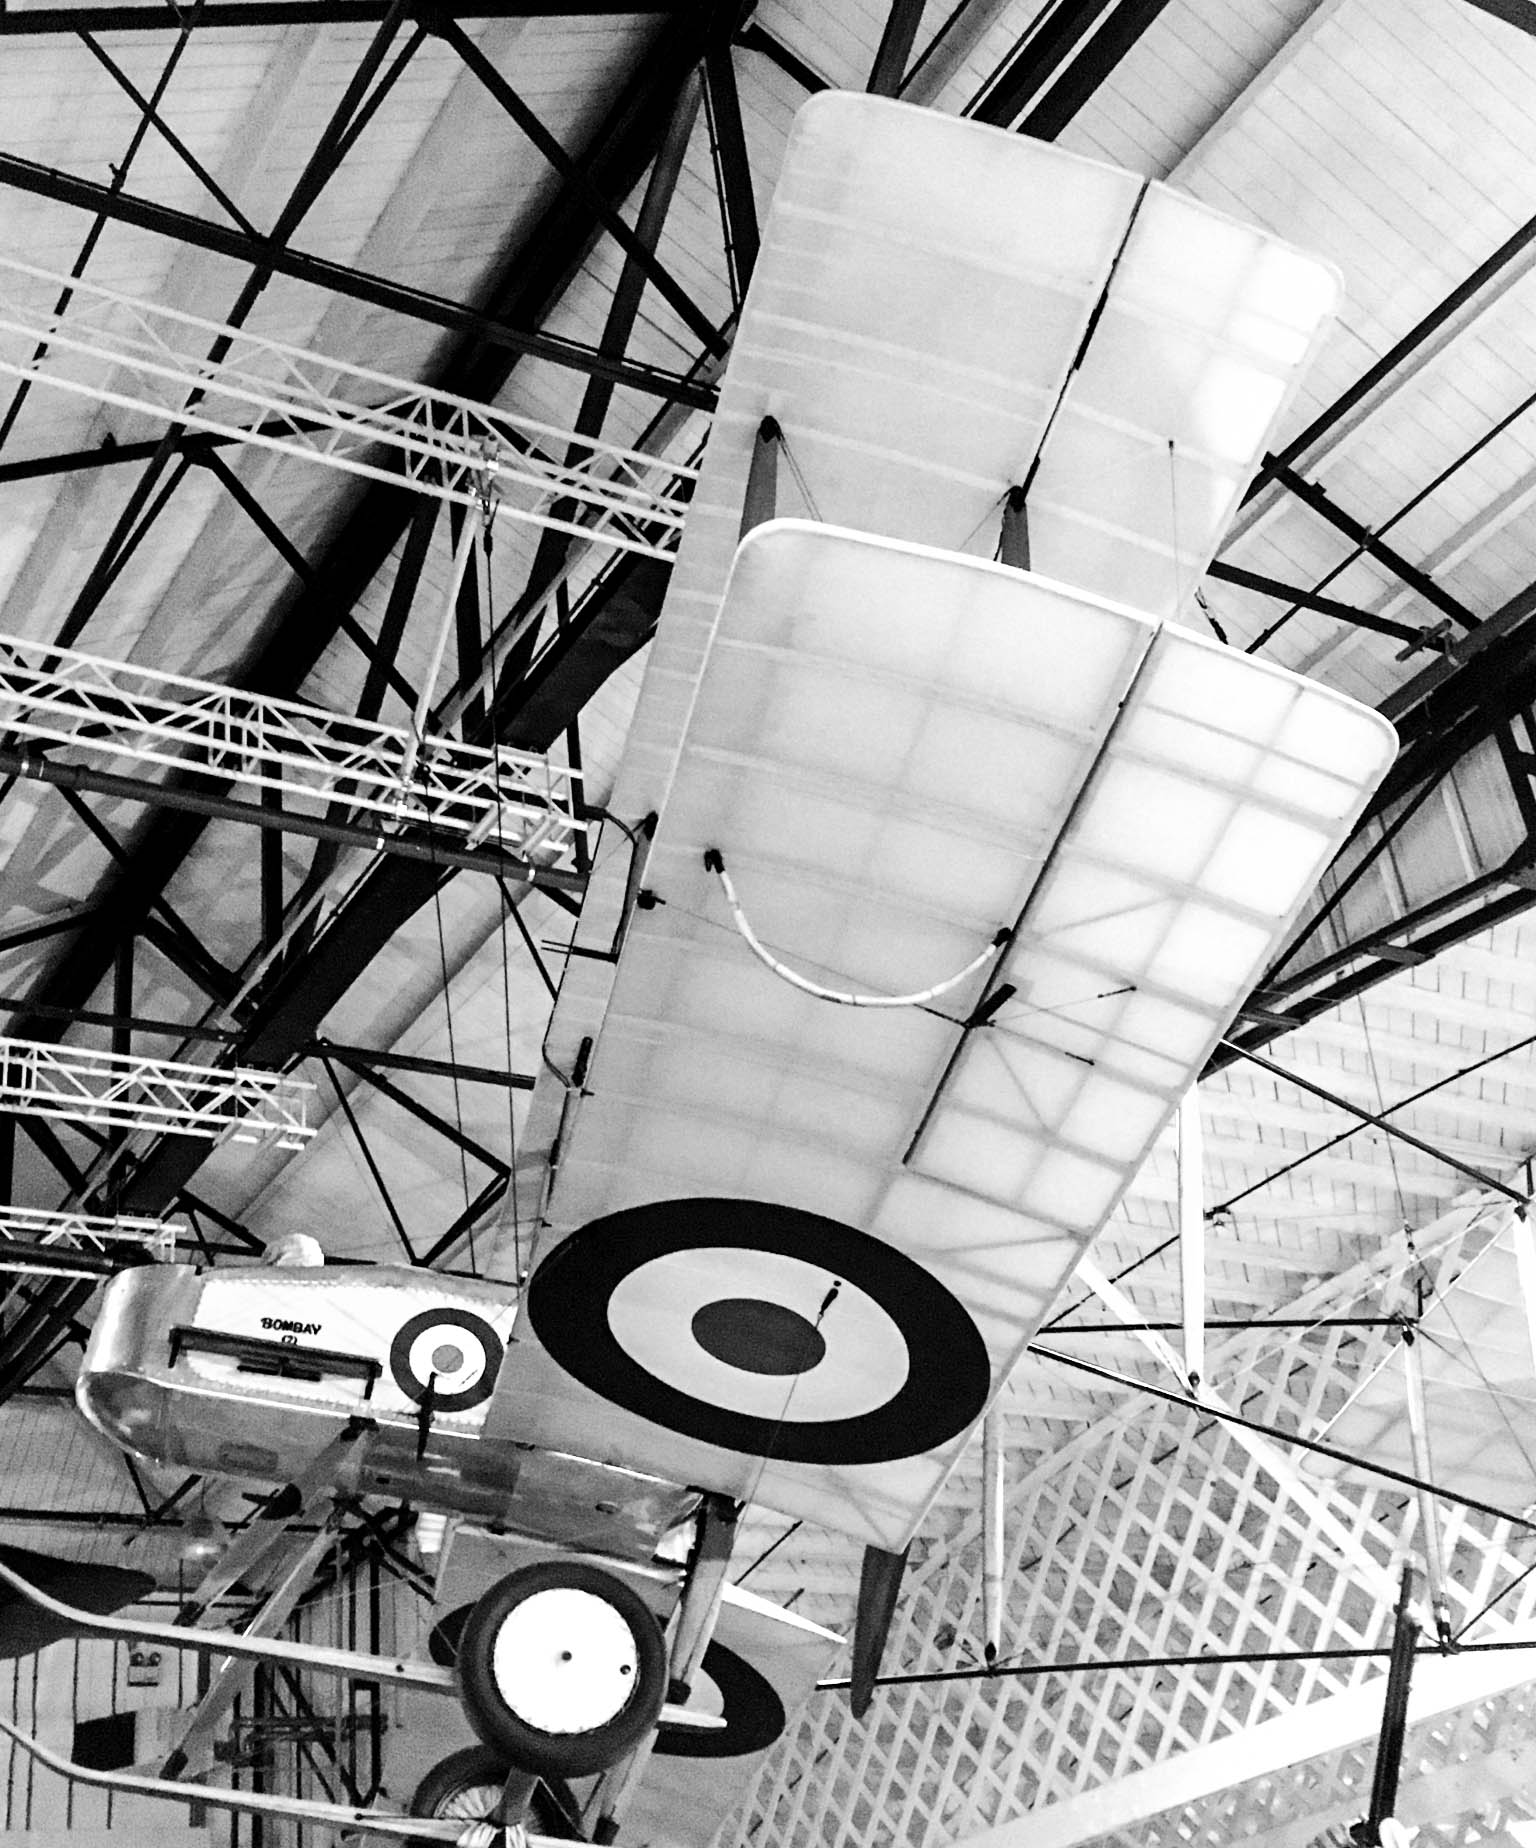 Royal Air Force Museum London306ccddb216a0325f6bf